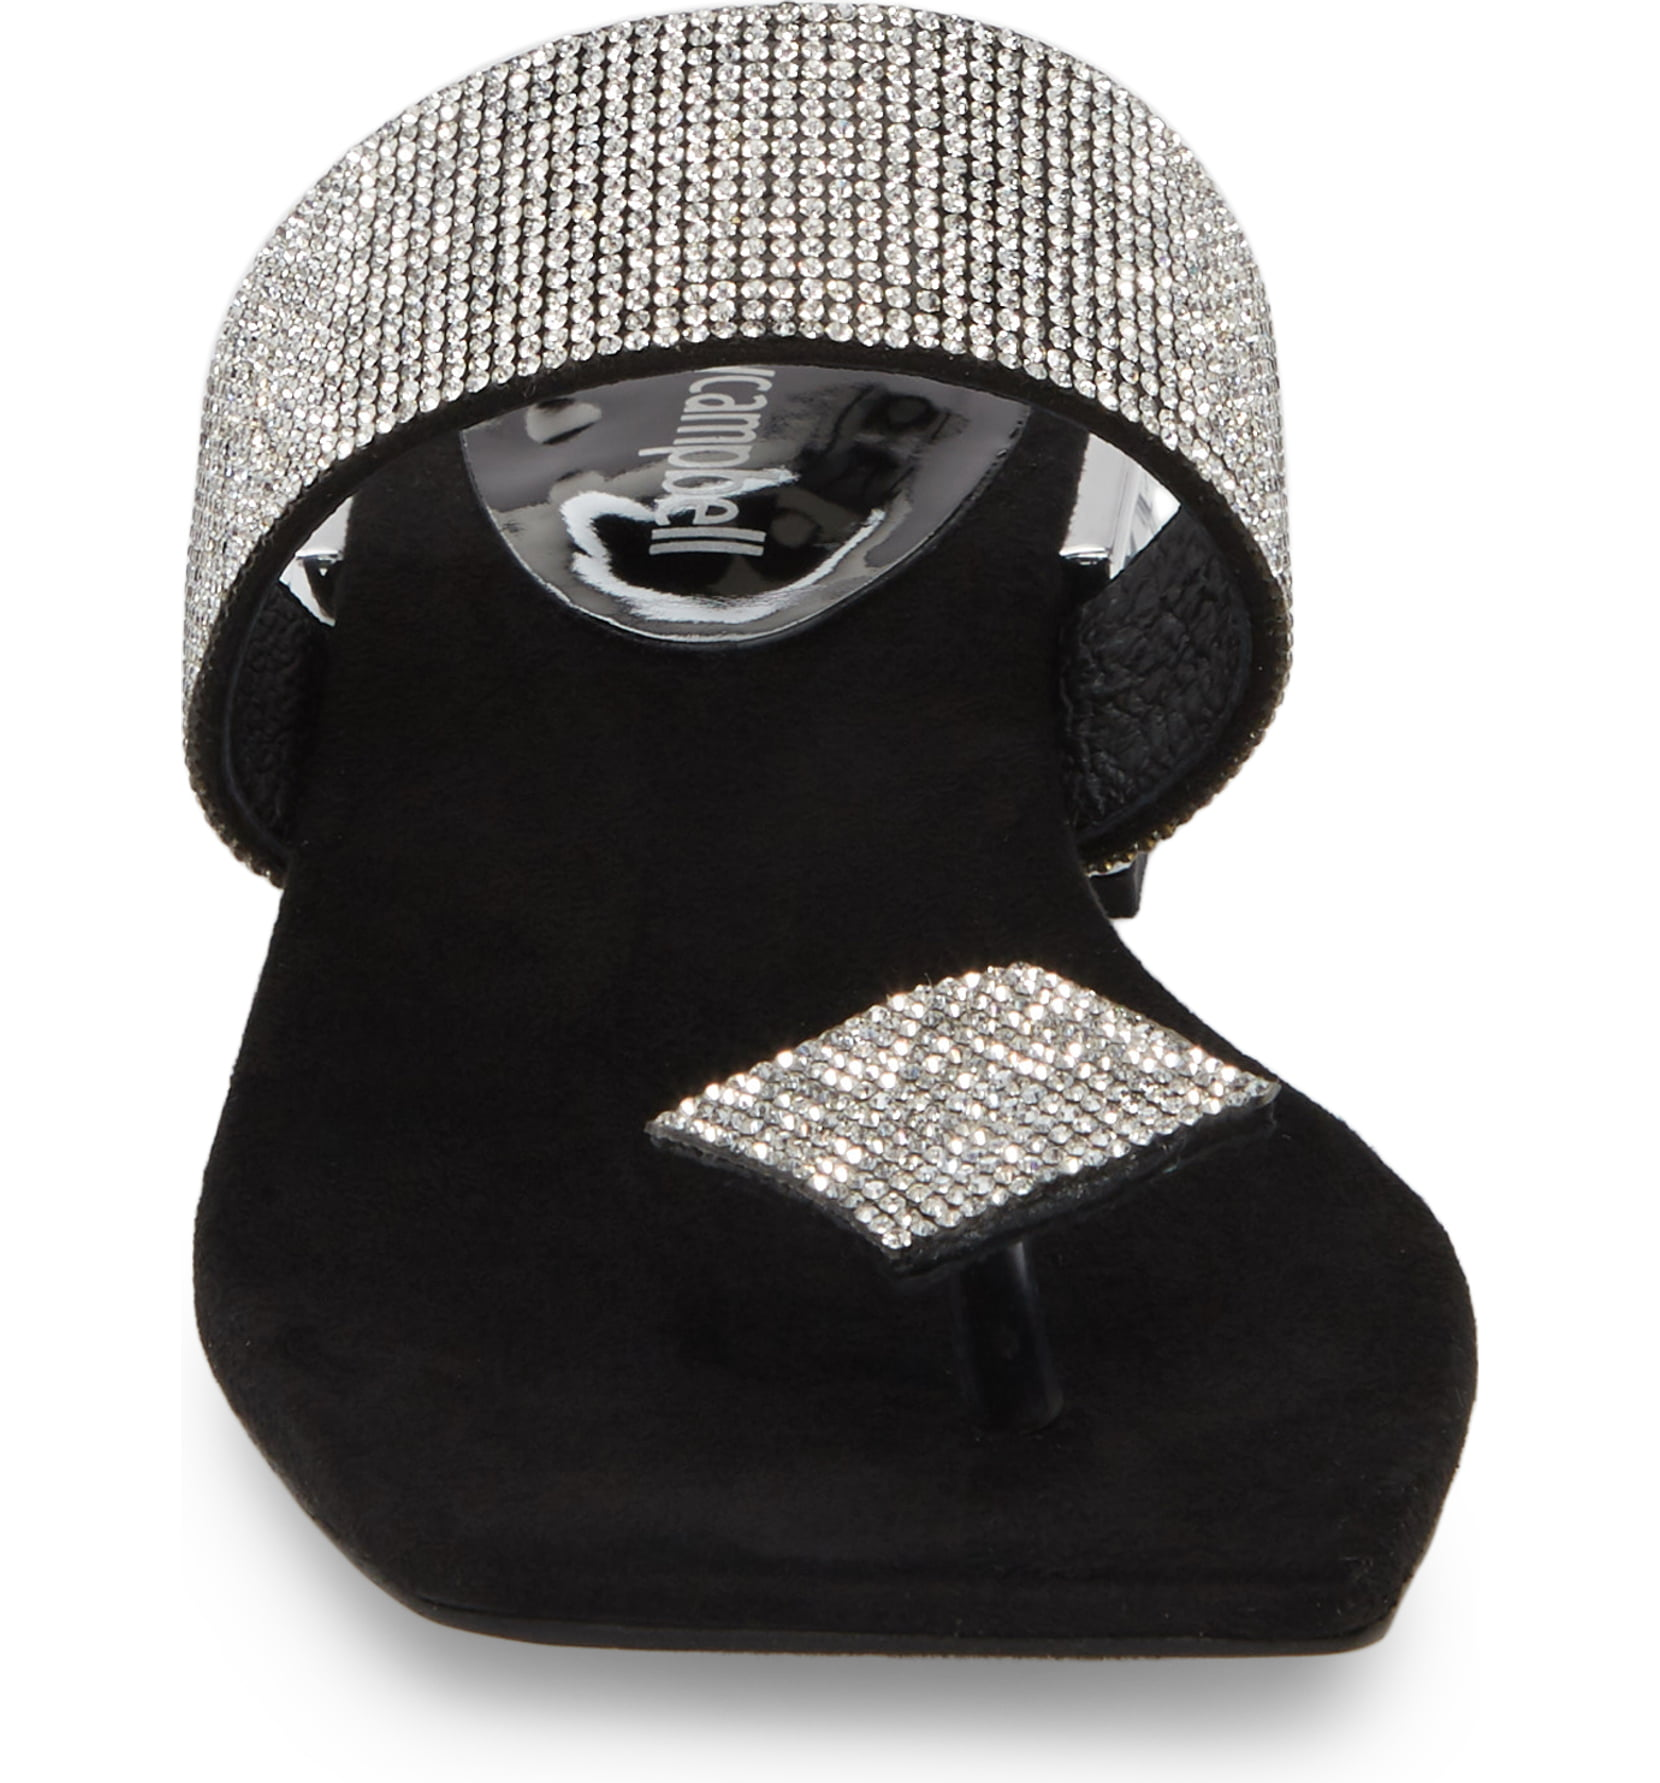 Jeffery-Campbell-ALISE-SH-Black-Silver-Embellished-Sandal-Jeweled-Square-Heel thumbnail 29